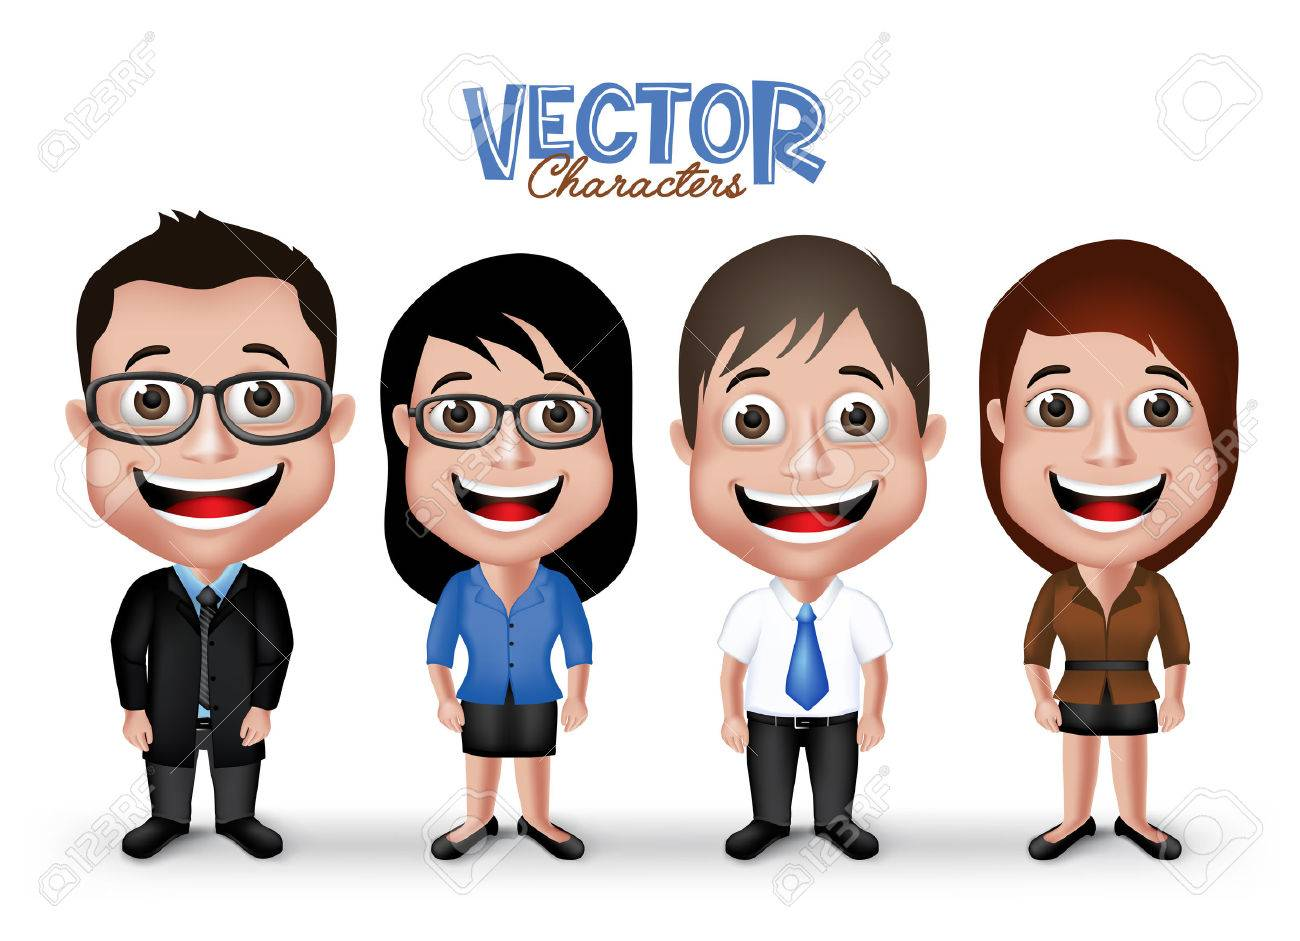 Set of Realistic 3D Professional Man and Woman Characters Happy Smiling in Formal Dress Attire for Business Isolated in White Background. - 43261138